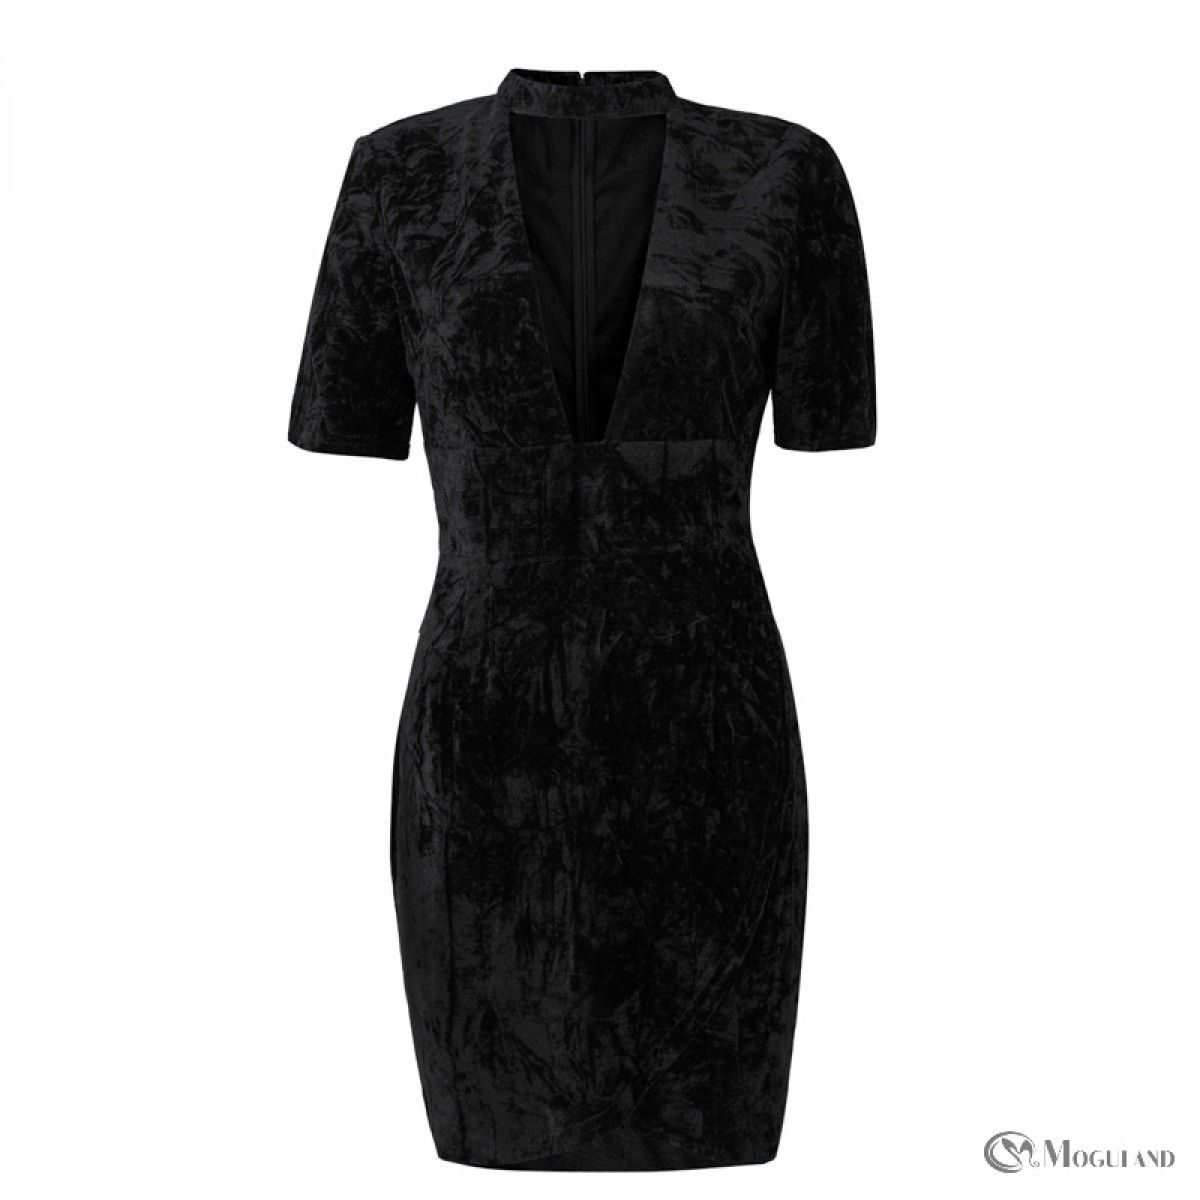 924ab2baa6 Ladies black crushed velvet choker plunge dress wholesale - dresses ...